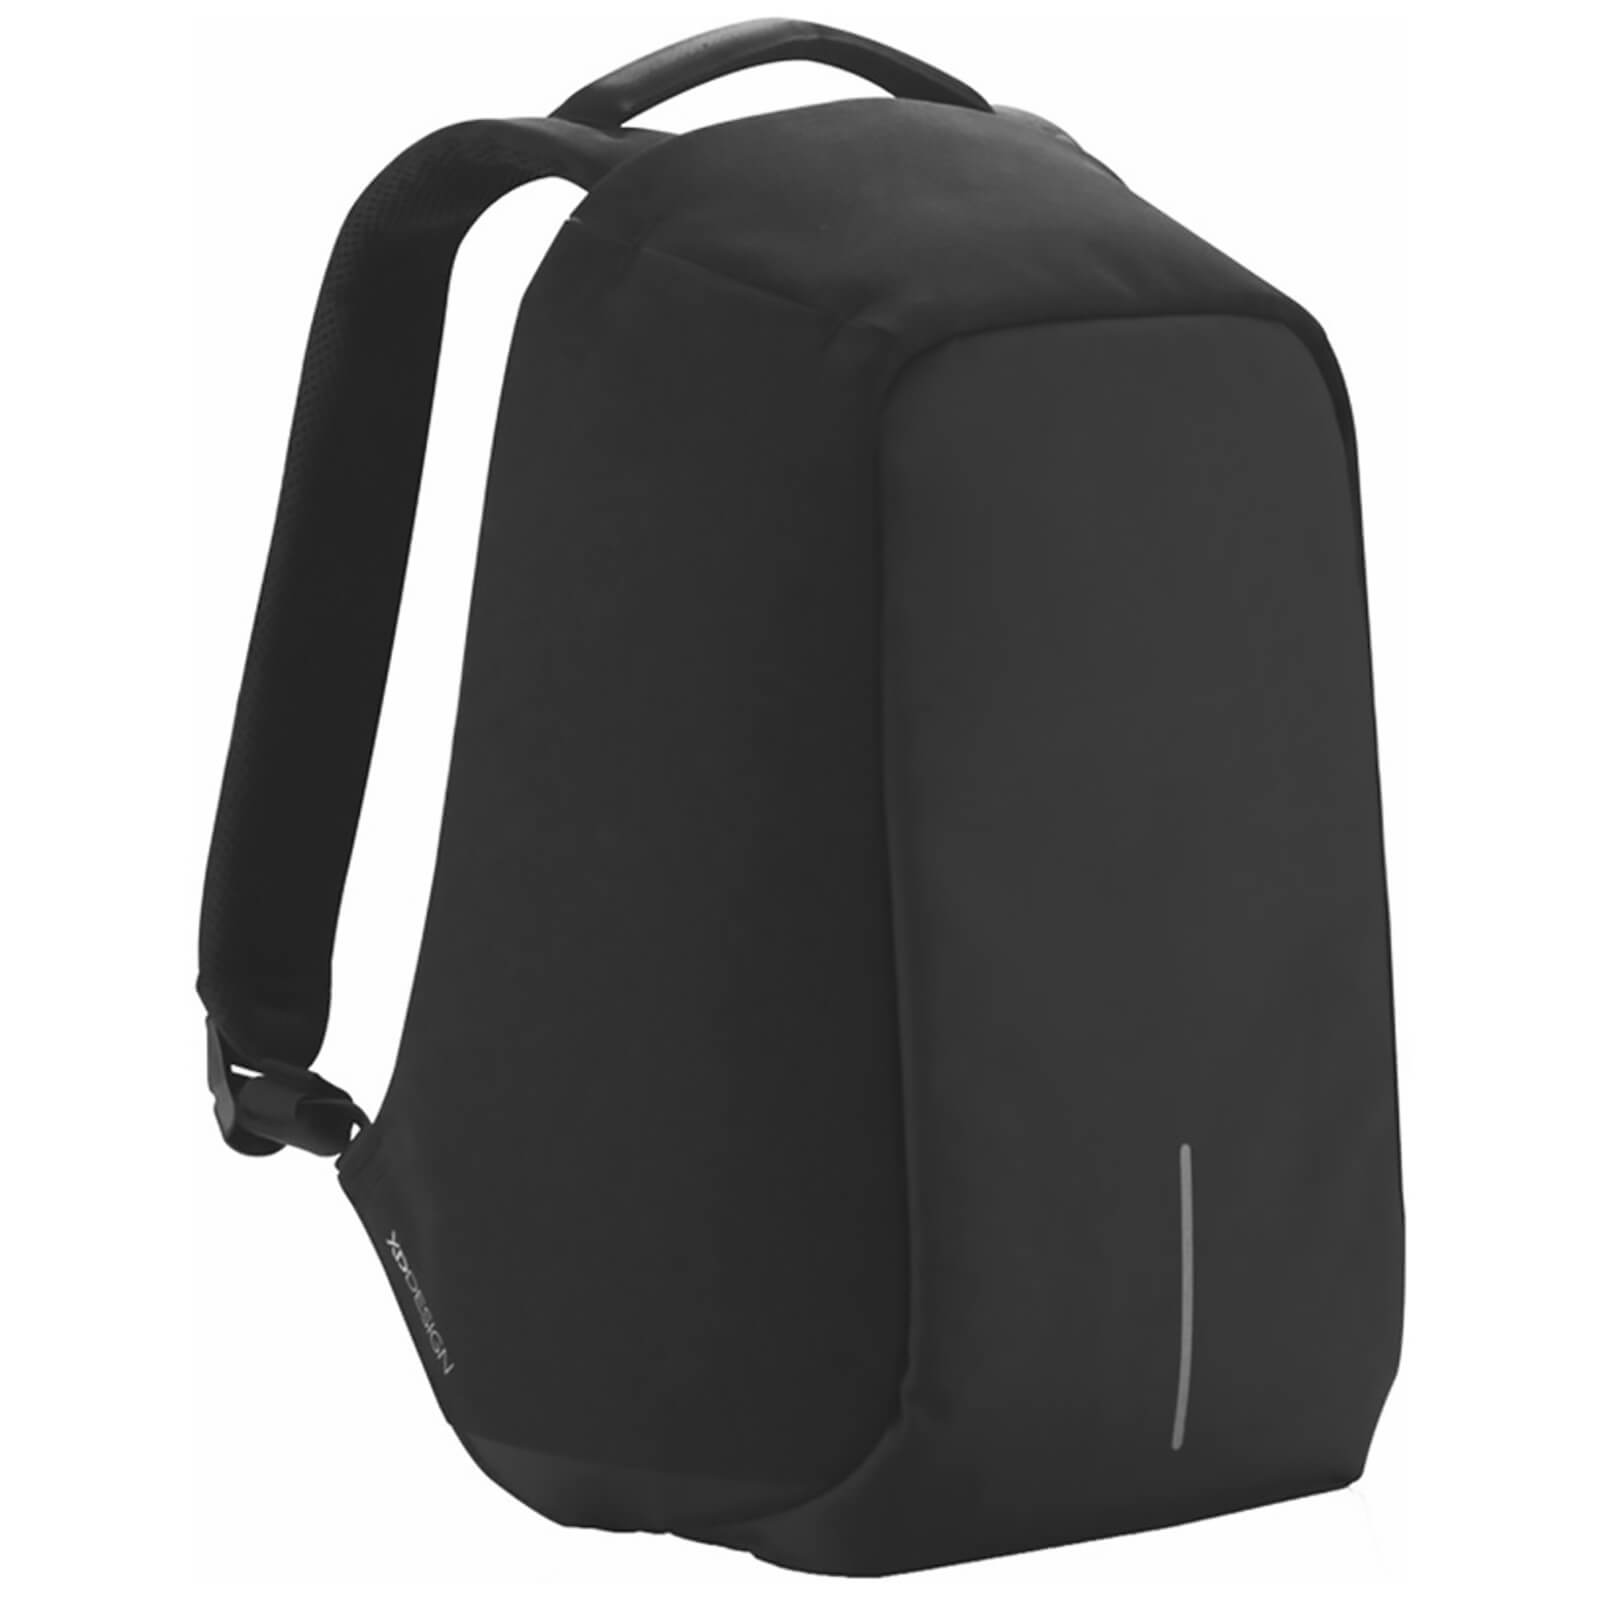 Bobby Backpack Anti Theft Xd Original Design USB External Charge Safety Travel